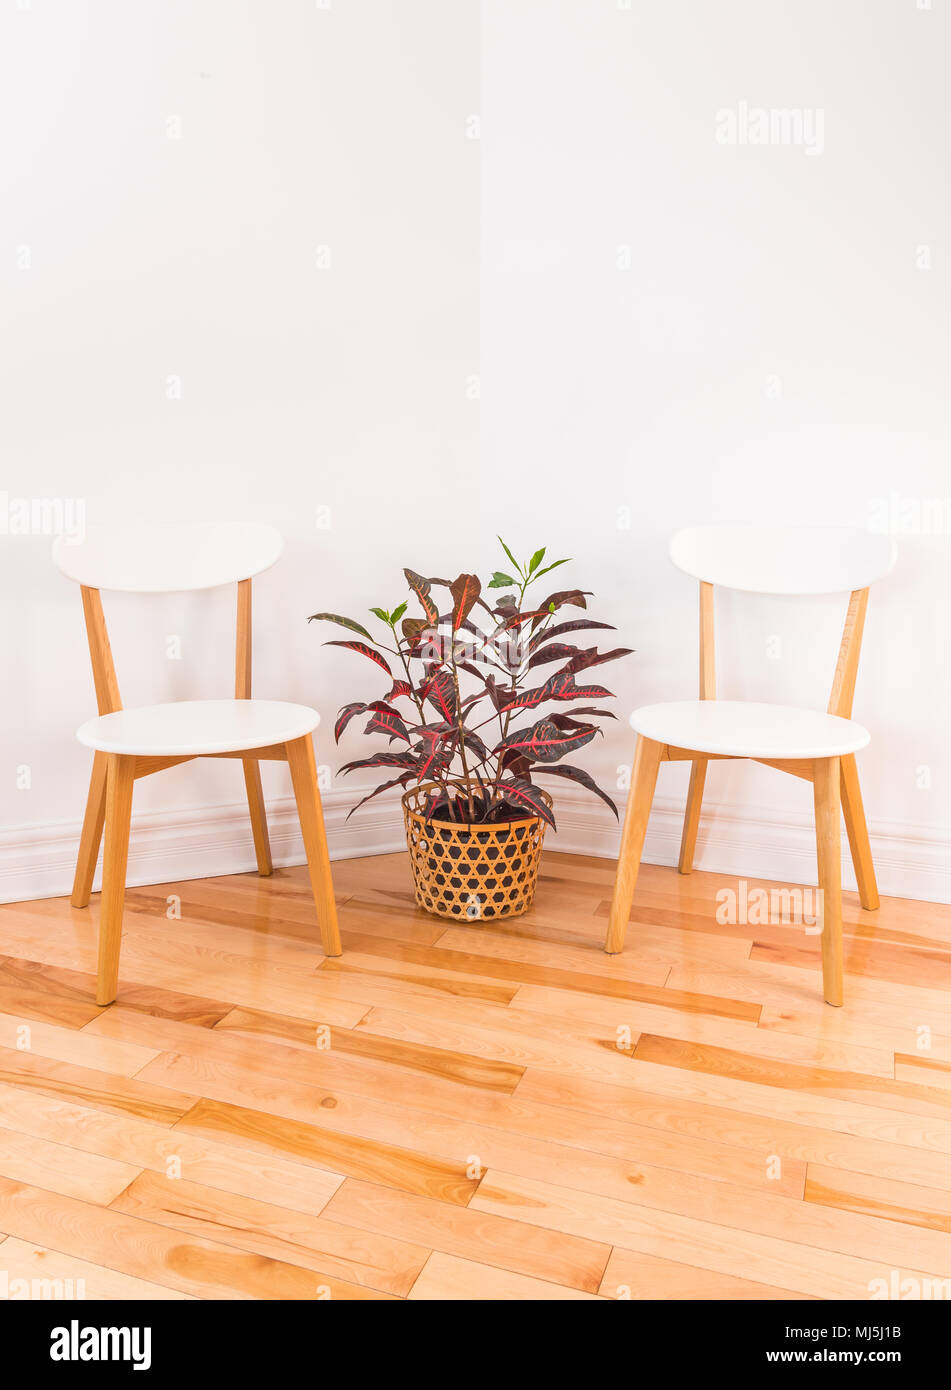 Room Corner With Elegant Chairs And Colorful Croton Plant In A